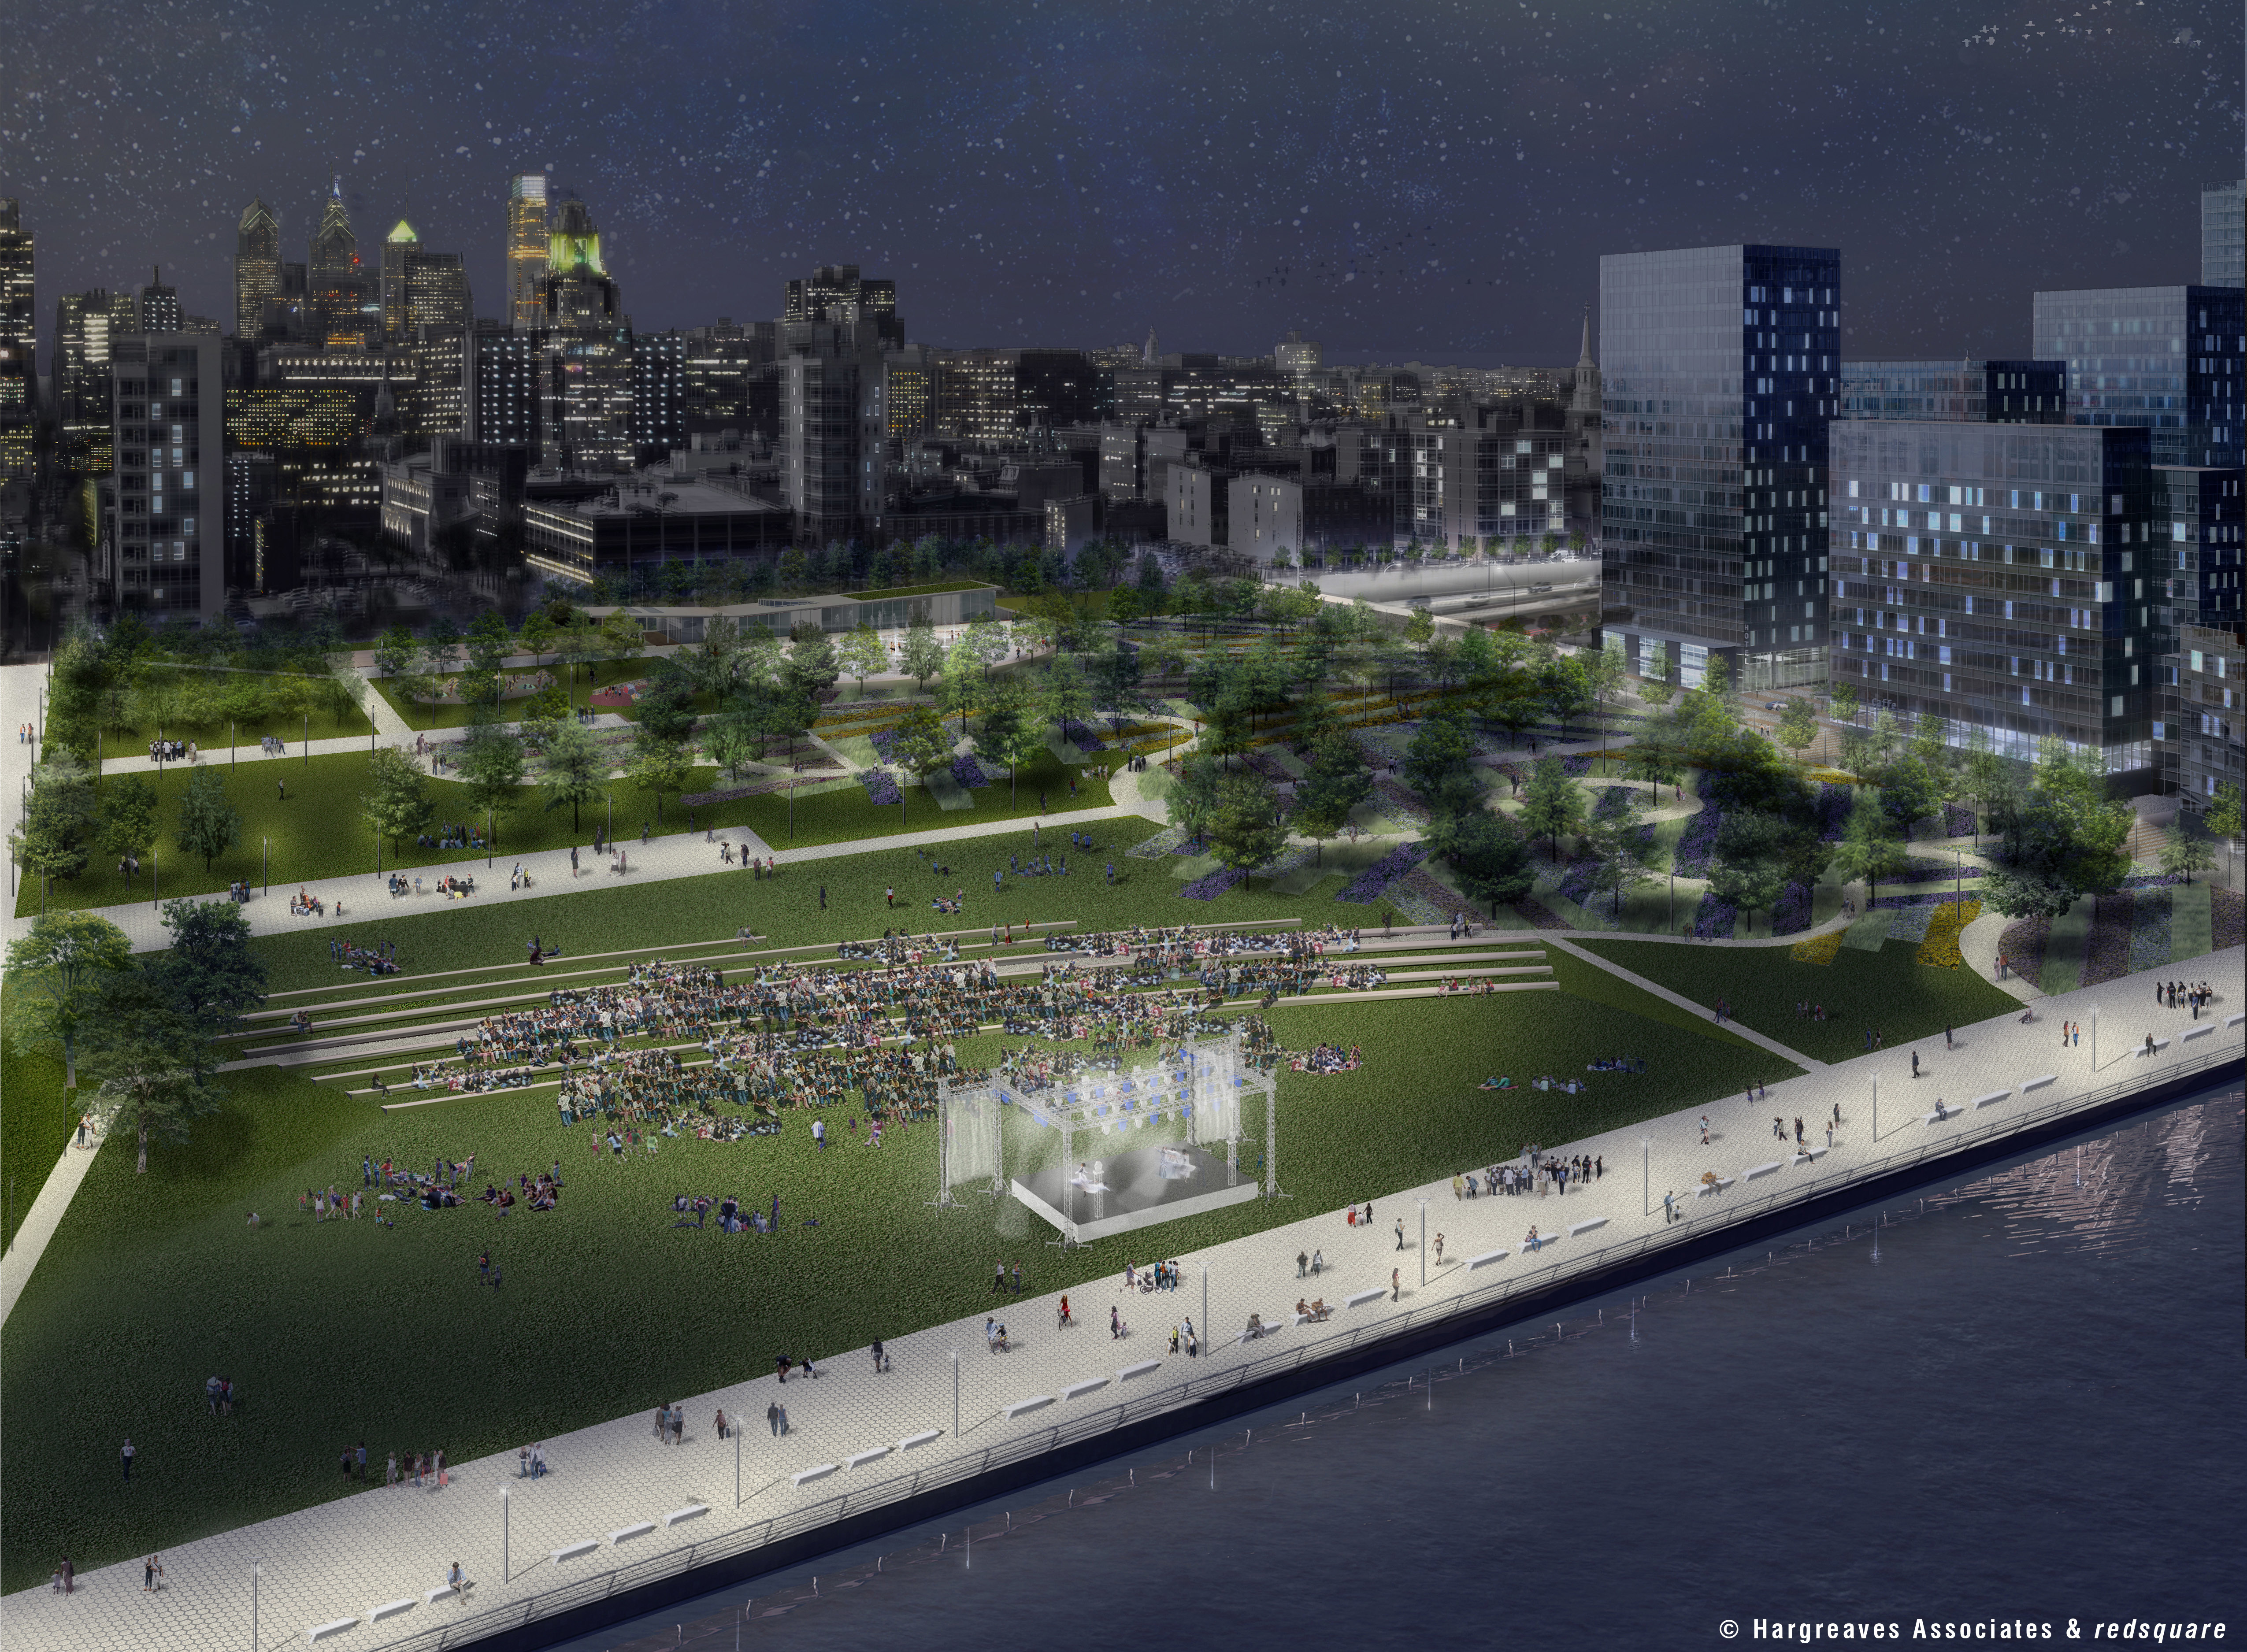 Penns Landing Park, night view, © Hargreaves Associates & redsquare